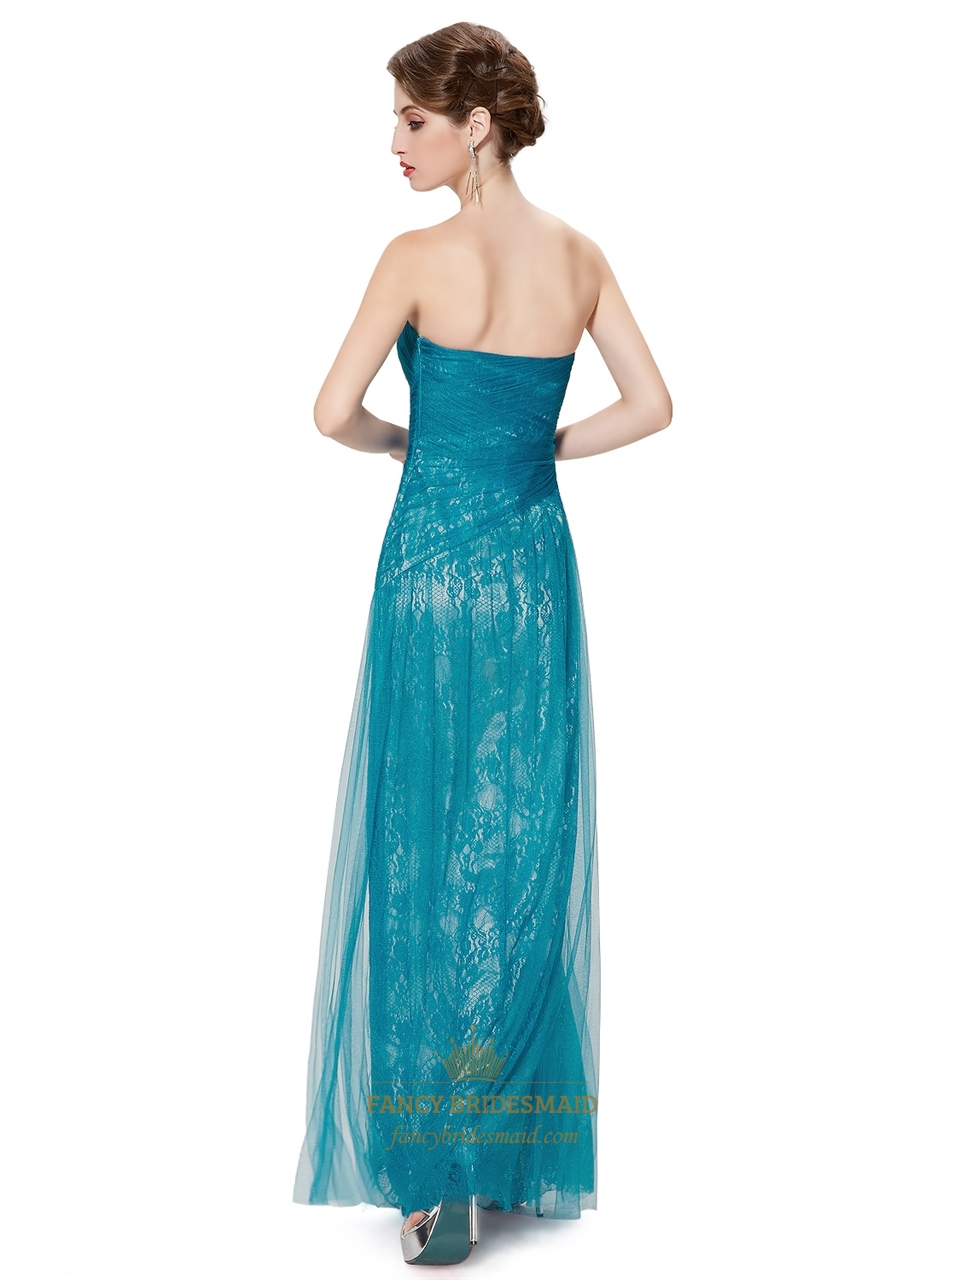 Teal Strapless Lace Sheath Floor Length Prom Dress With ...